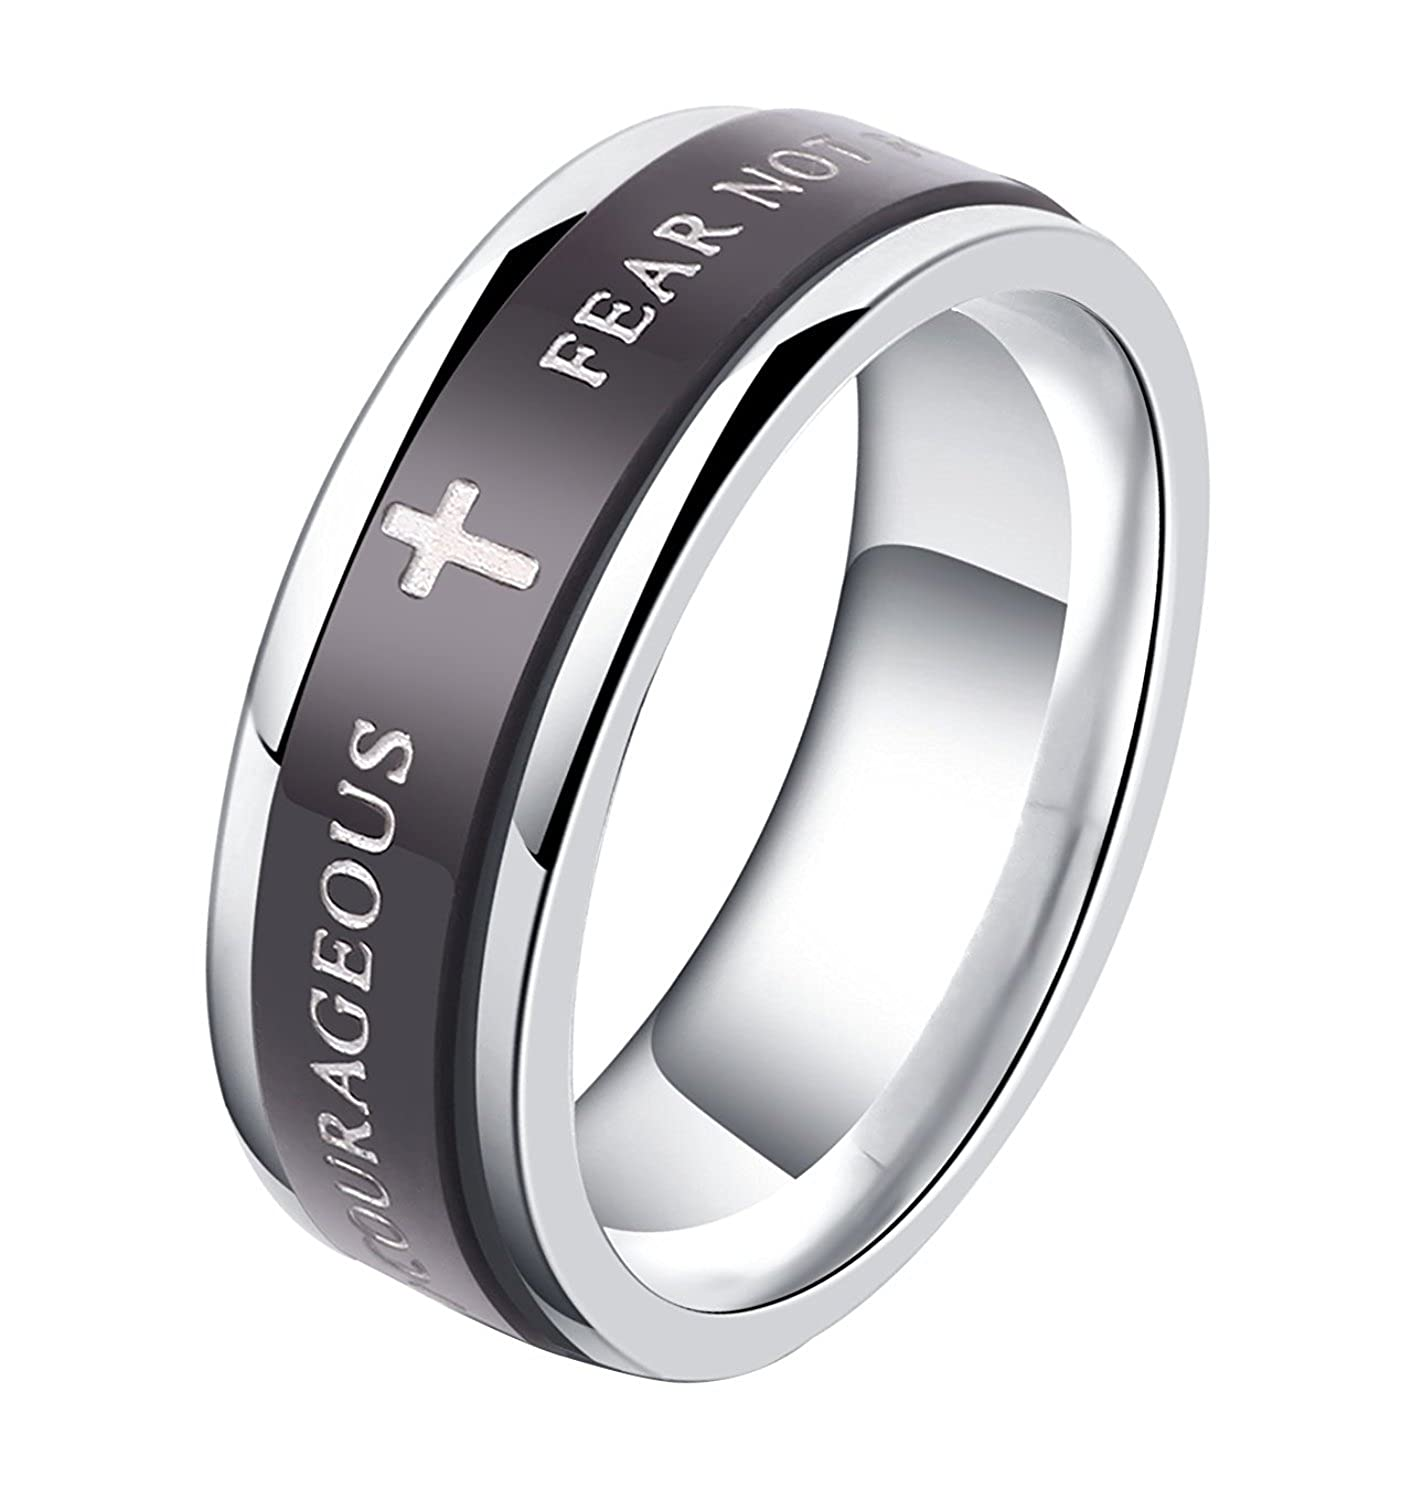 ALEXTINA 7MM Black Stainless Steel Bible Verse Isaiah 41:10 JOSHUA 1:9 Christian Ring Spinner Wedding Band (Size M-Y)